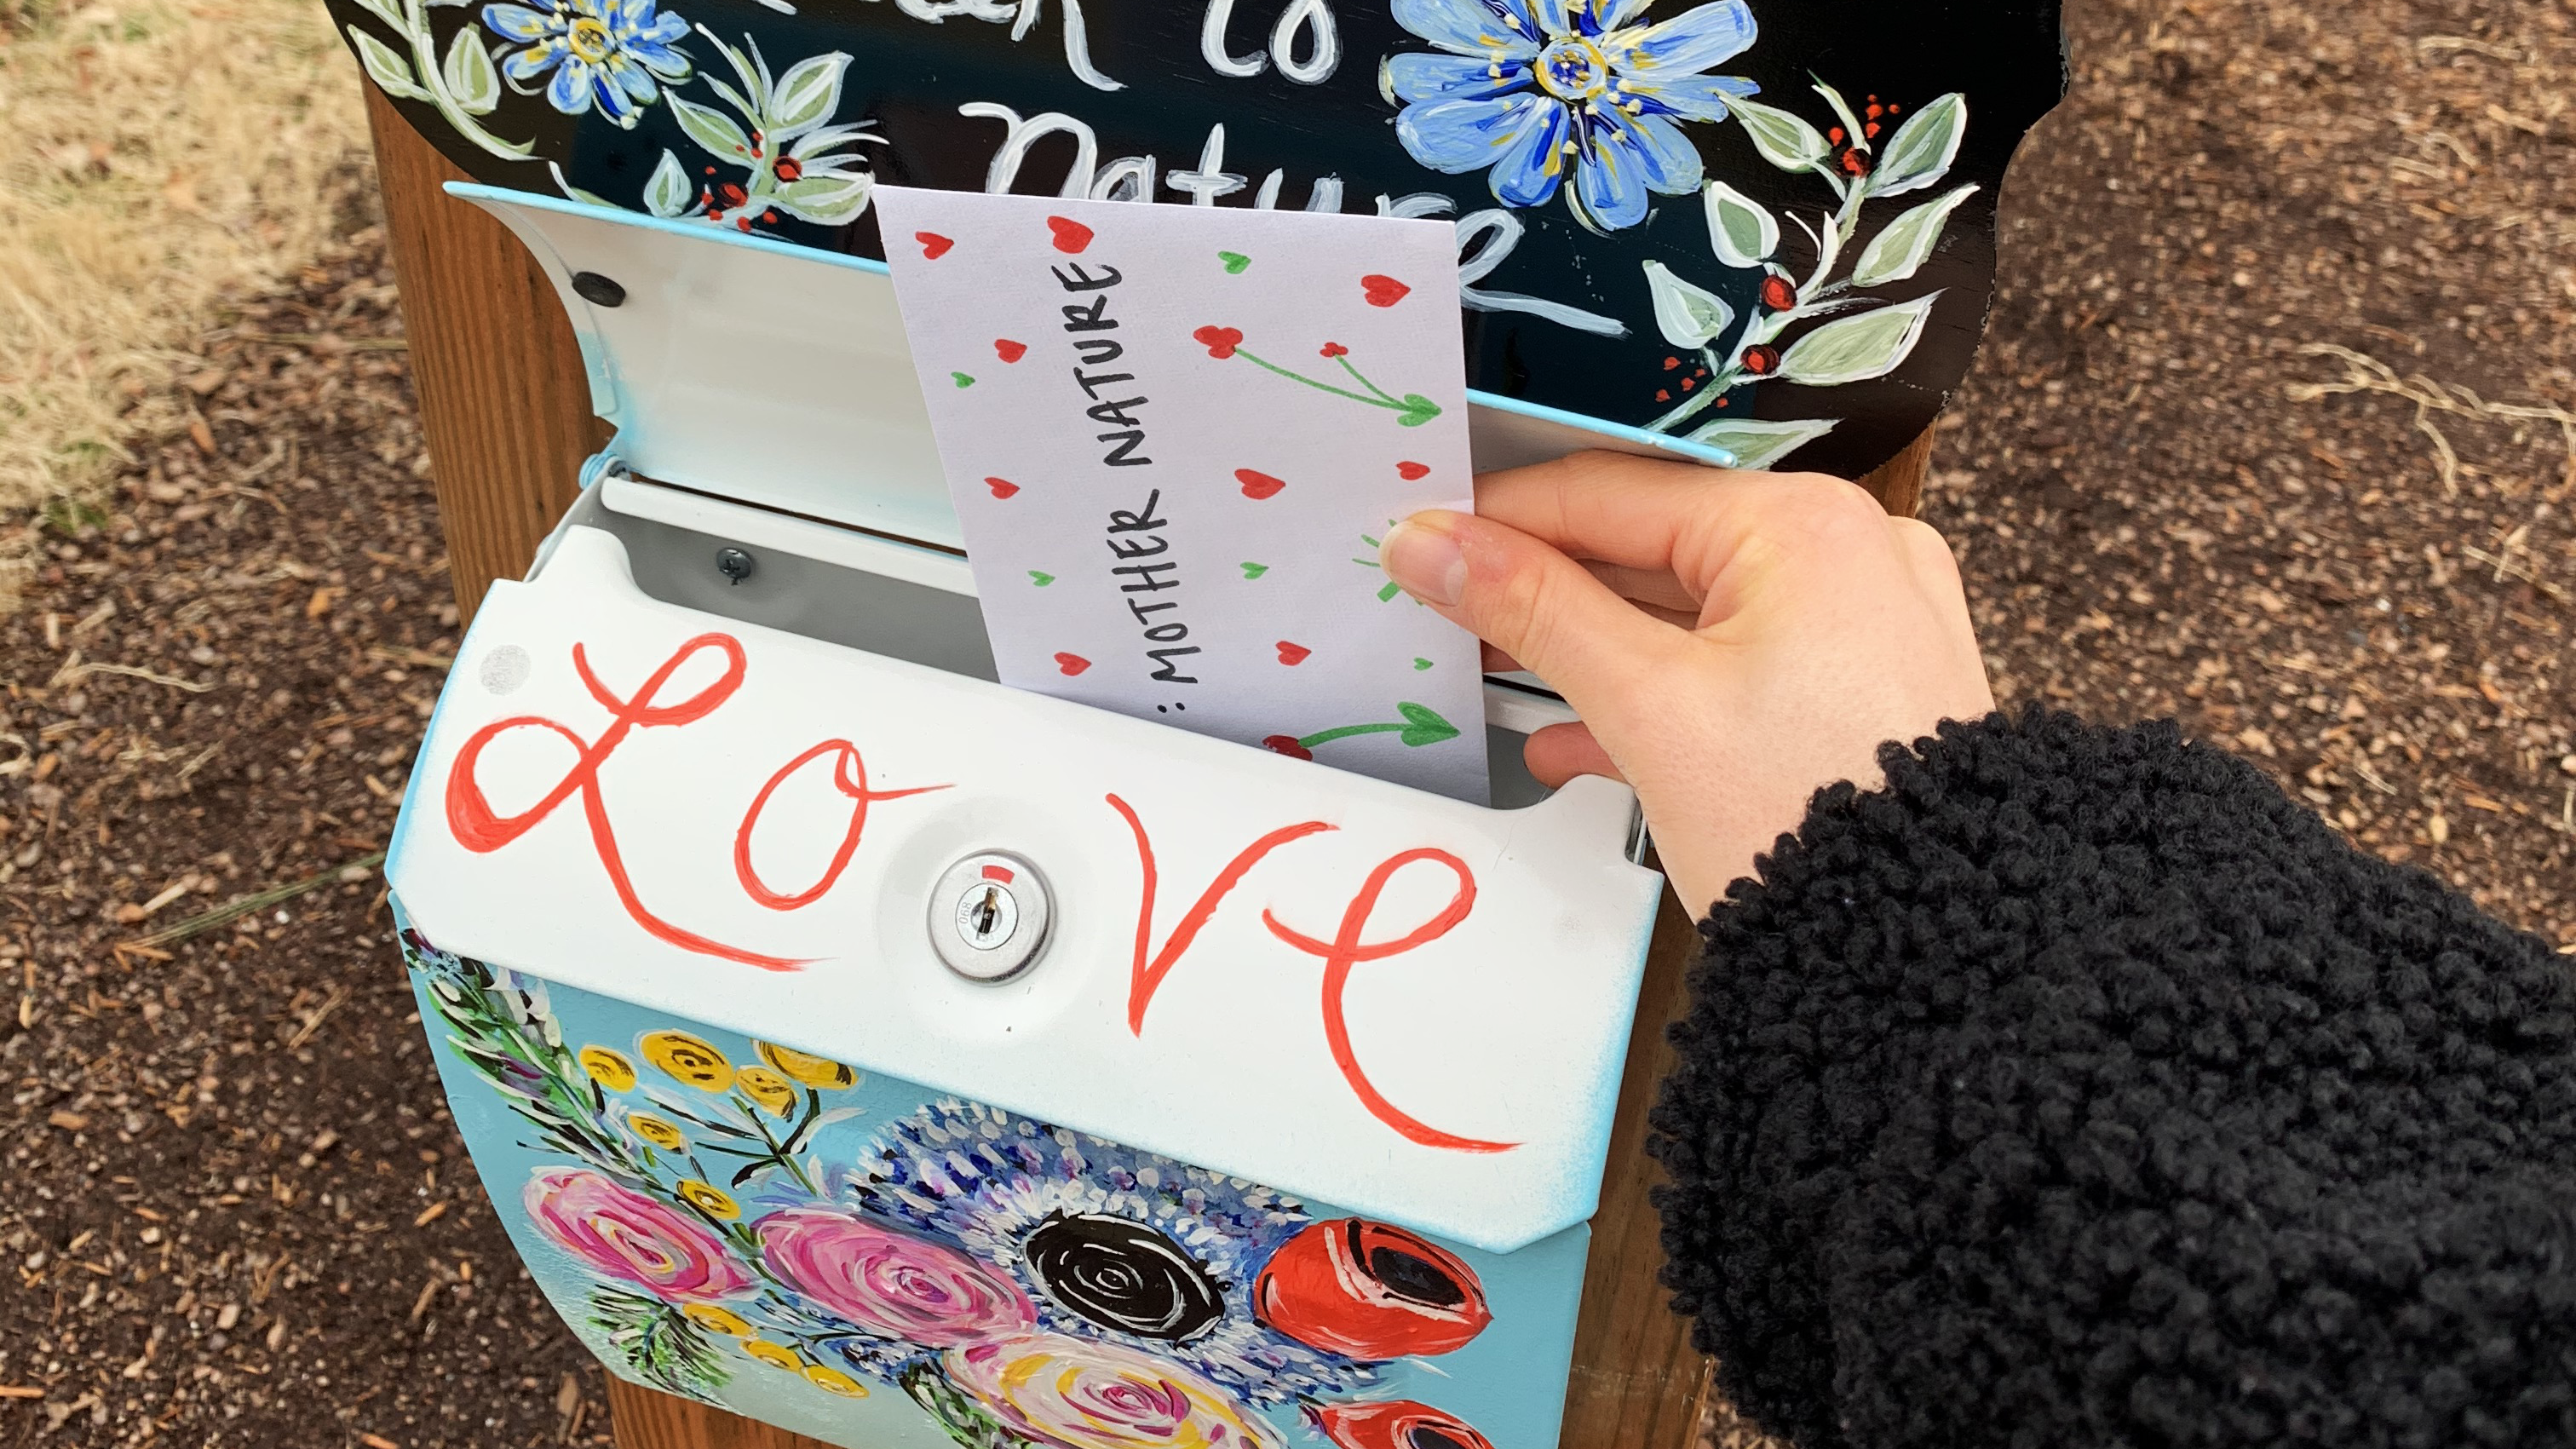 A love letter, addressed to Mother Nature, is being put into a mailbox at Lewis Ginter Botanical Garden.